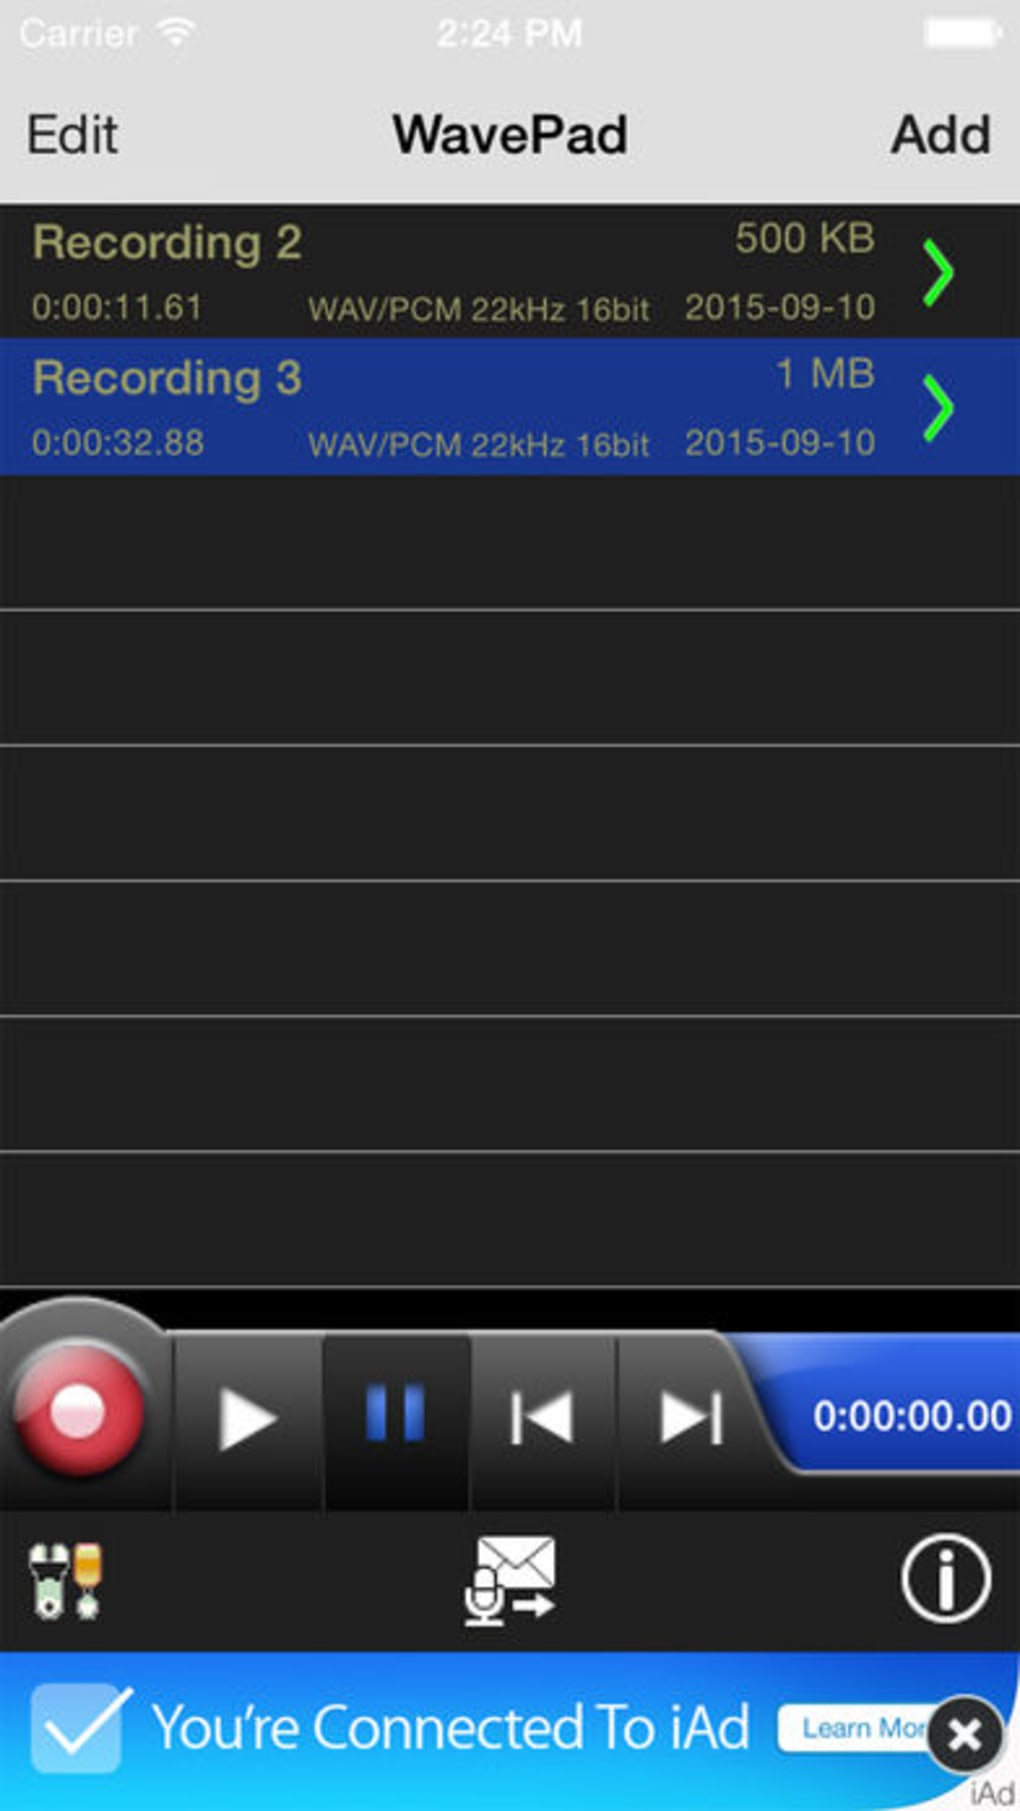 WavePad Music and Audio Editor for iPhone - Download